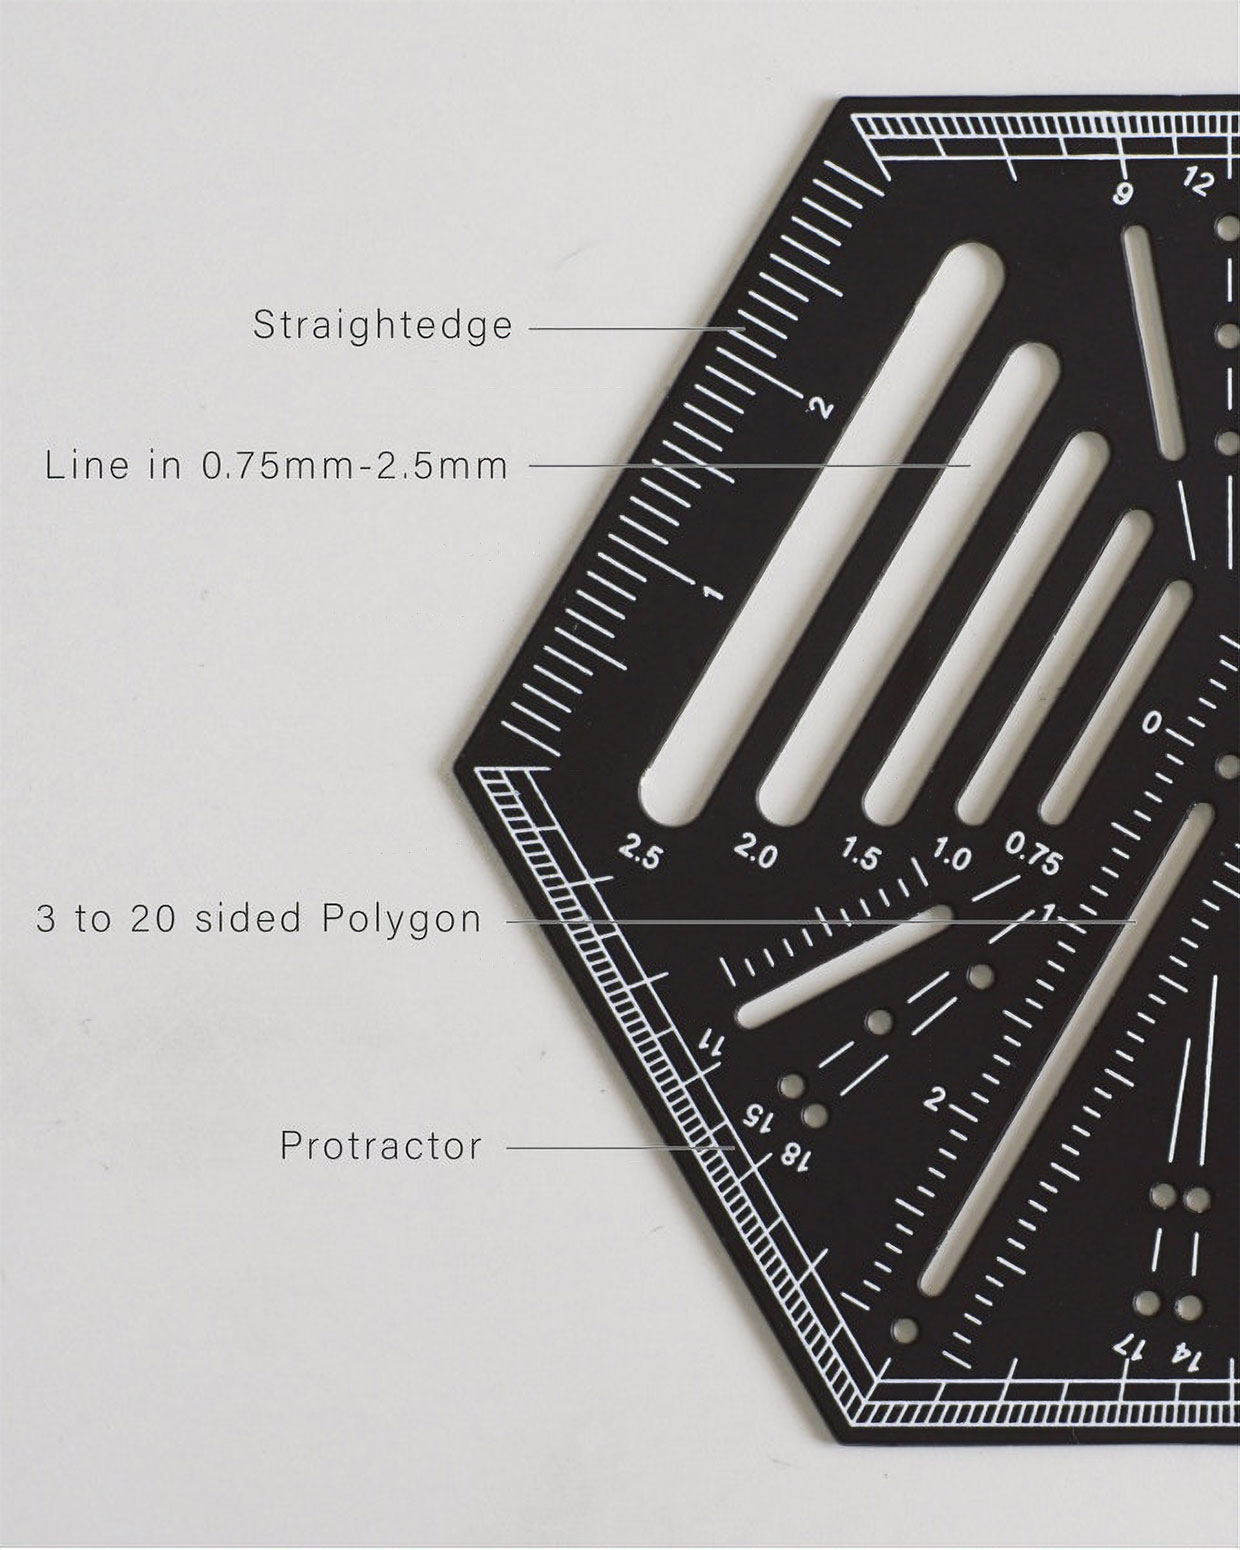 Hexagonal Ruler 2.0